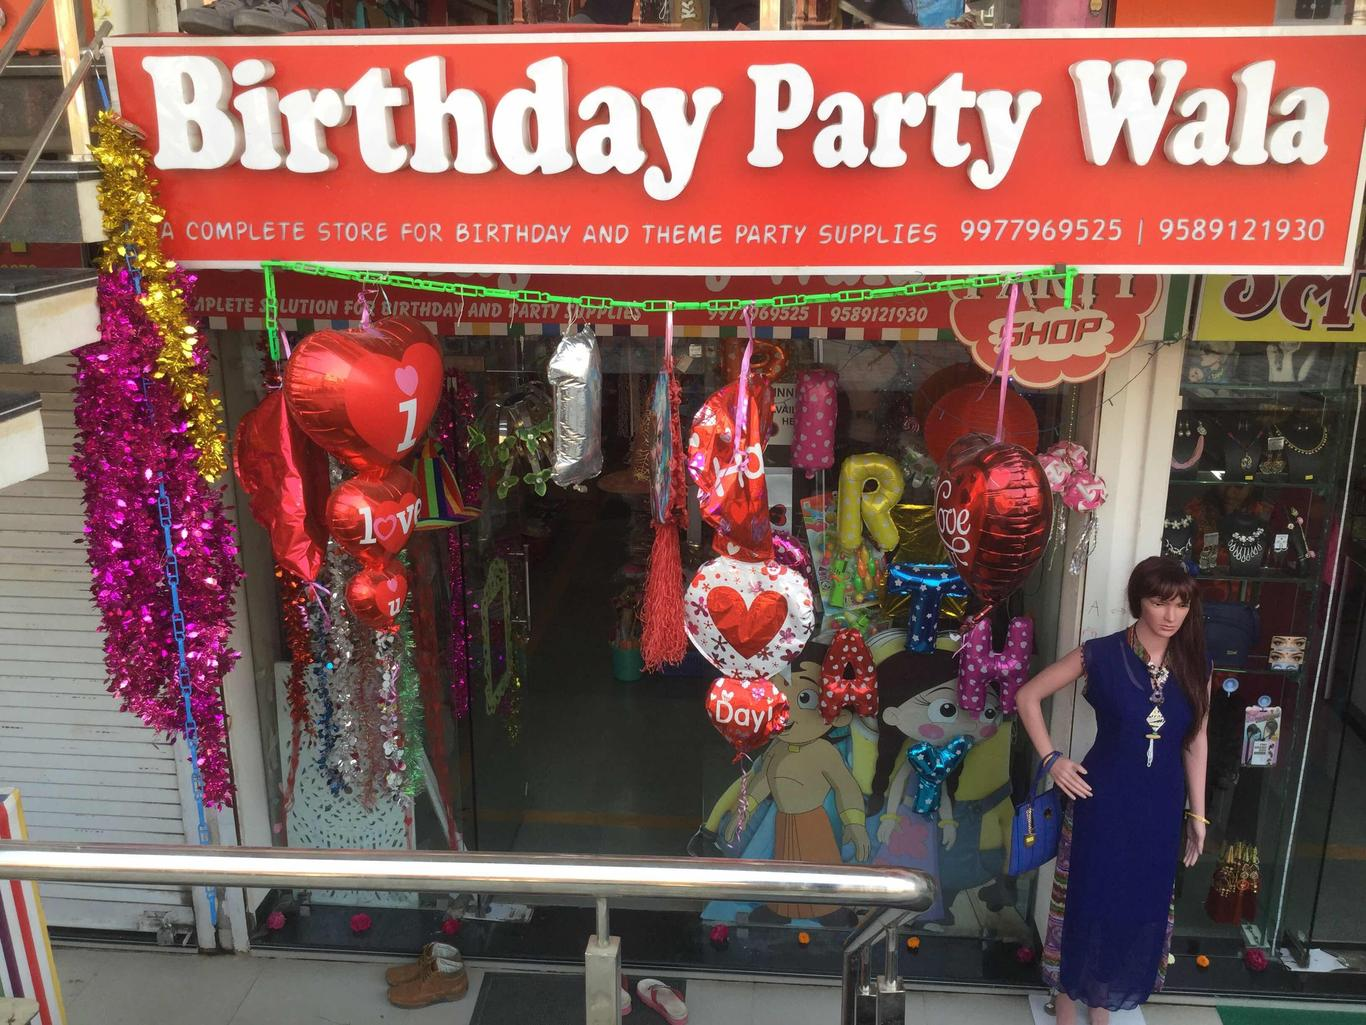 Birthday Party Wala